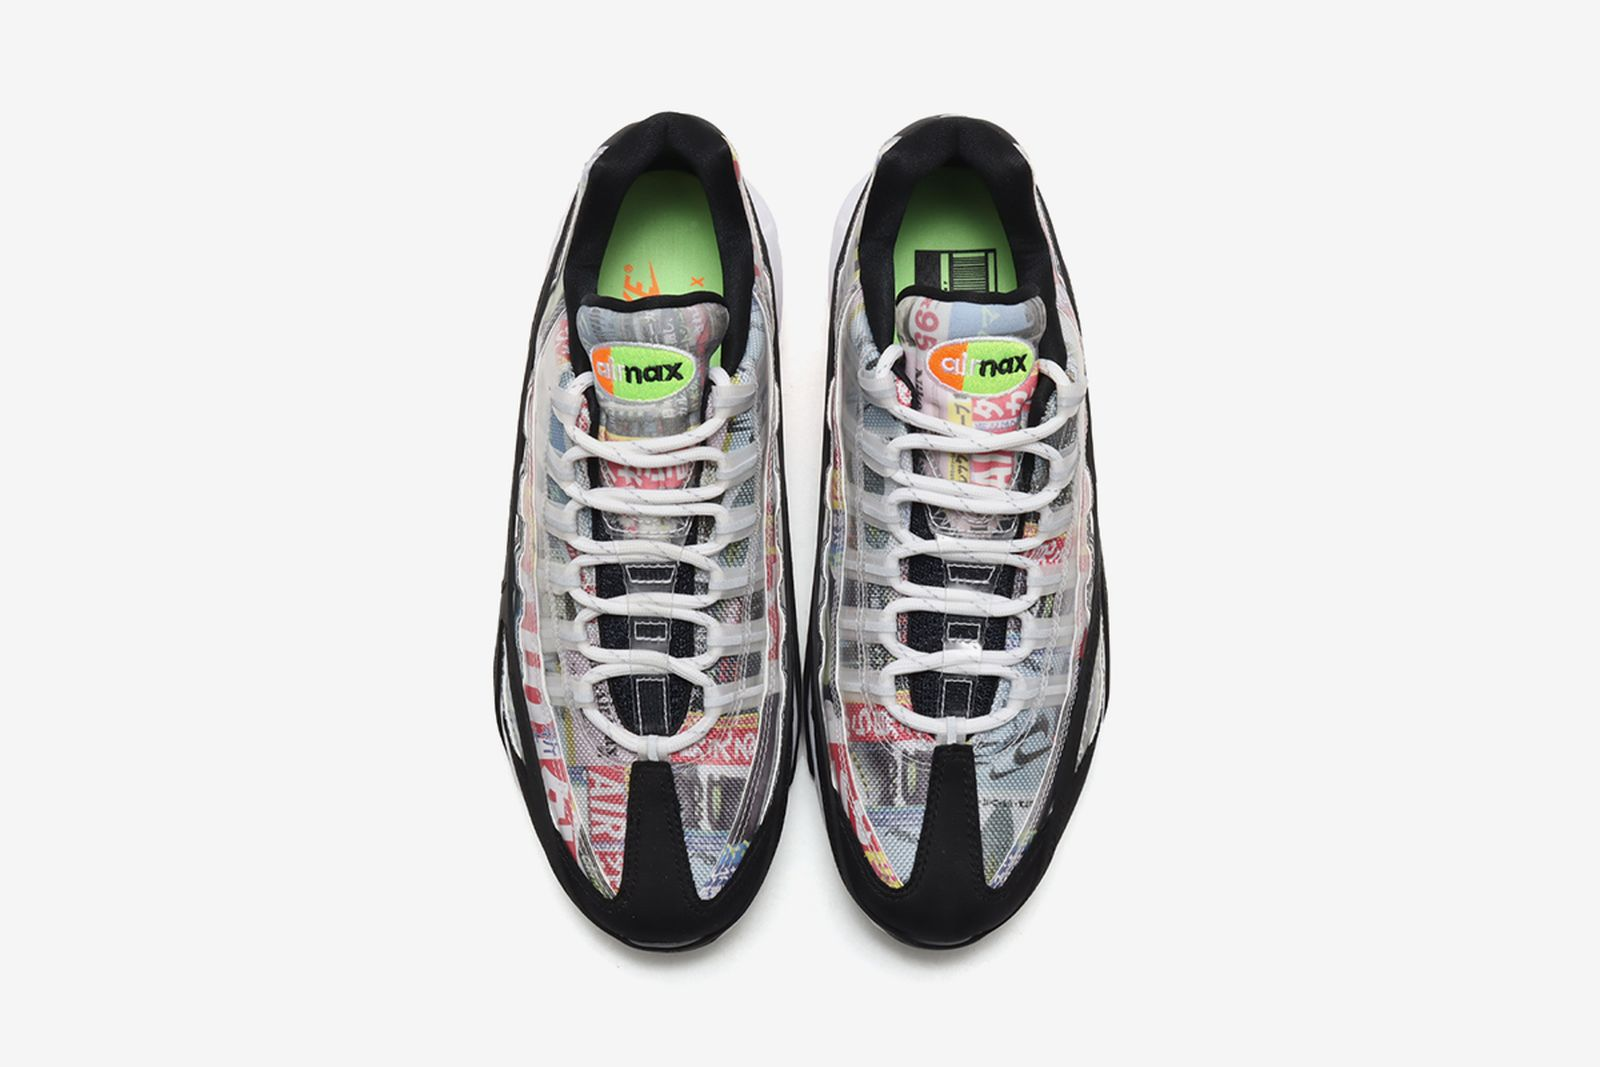 nike-air-max-convenience-store-collection-release-info-14